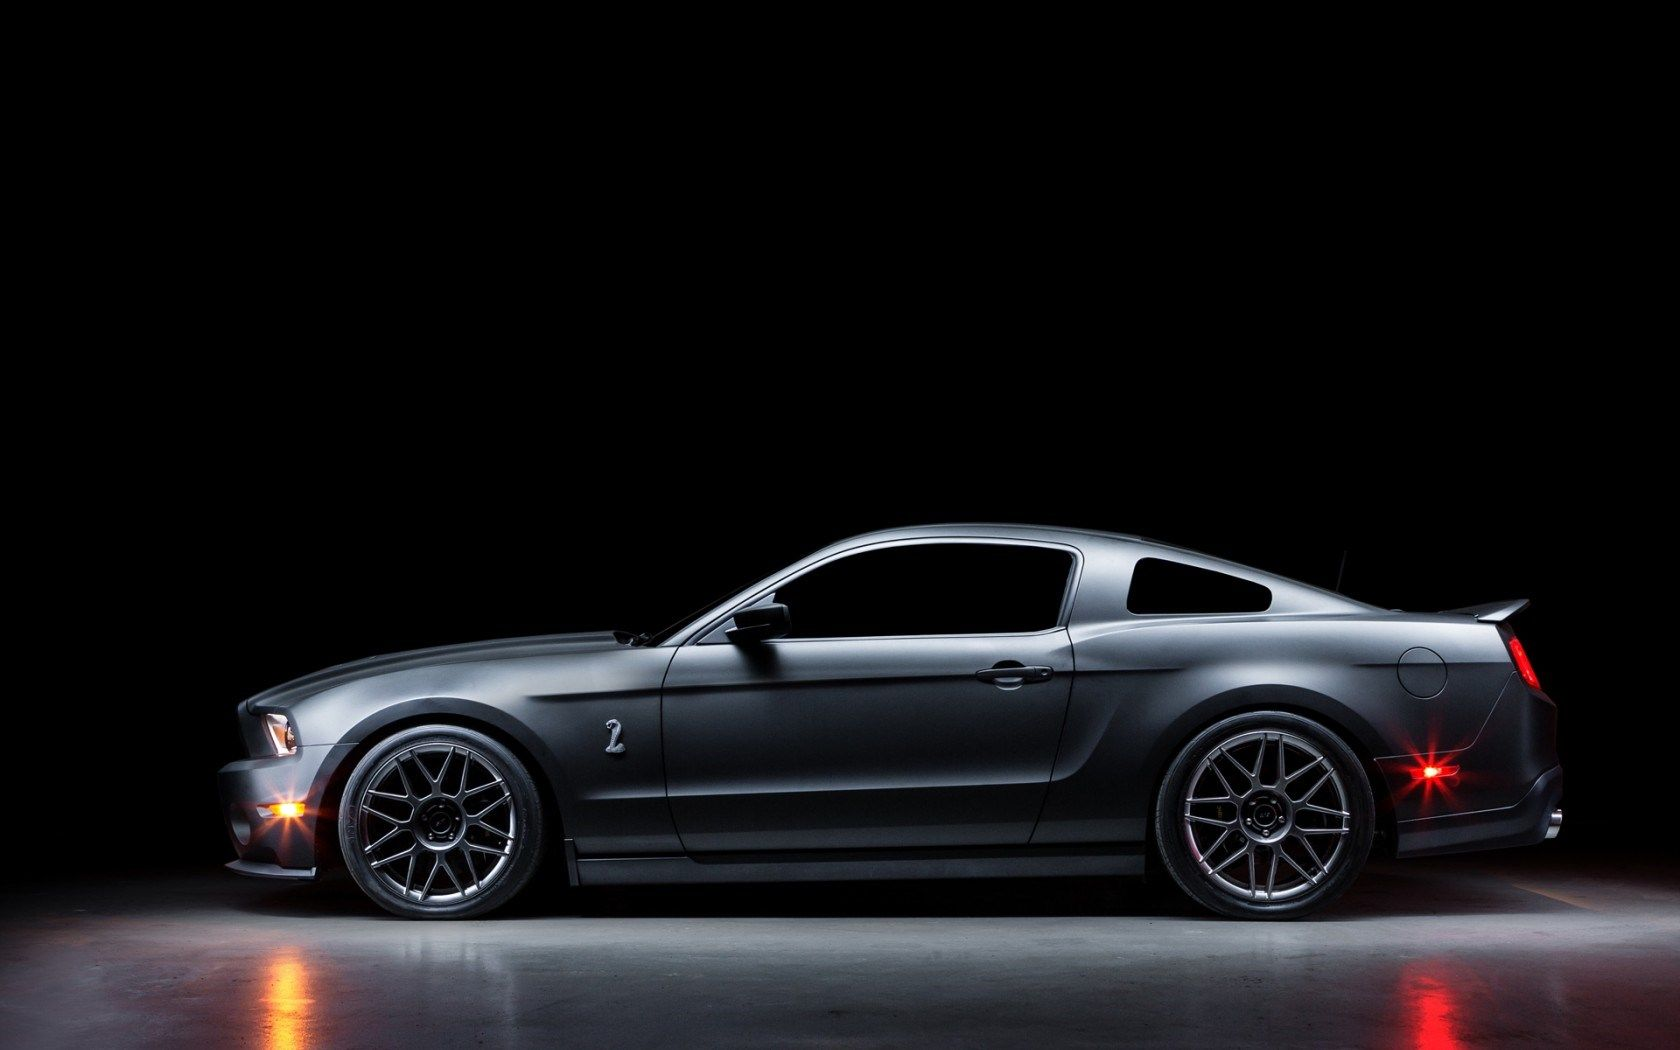 Ford Mustang Shelby Gt500 Profile Car 6923034 Shelby Gt500 Ford Mustang Shelby Gt500 Mustang Shelby